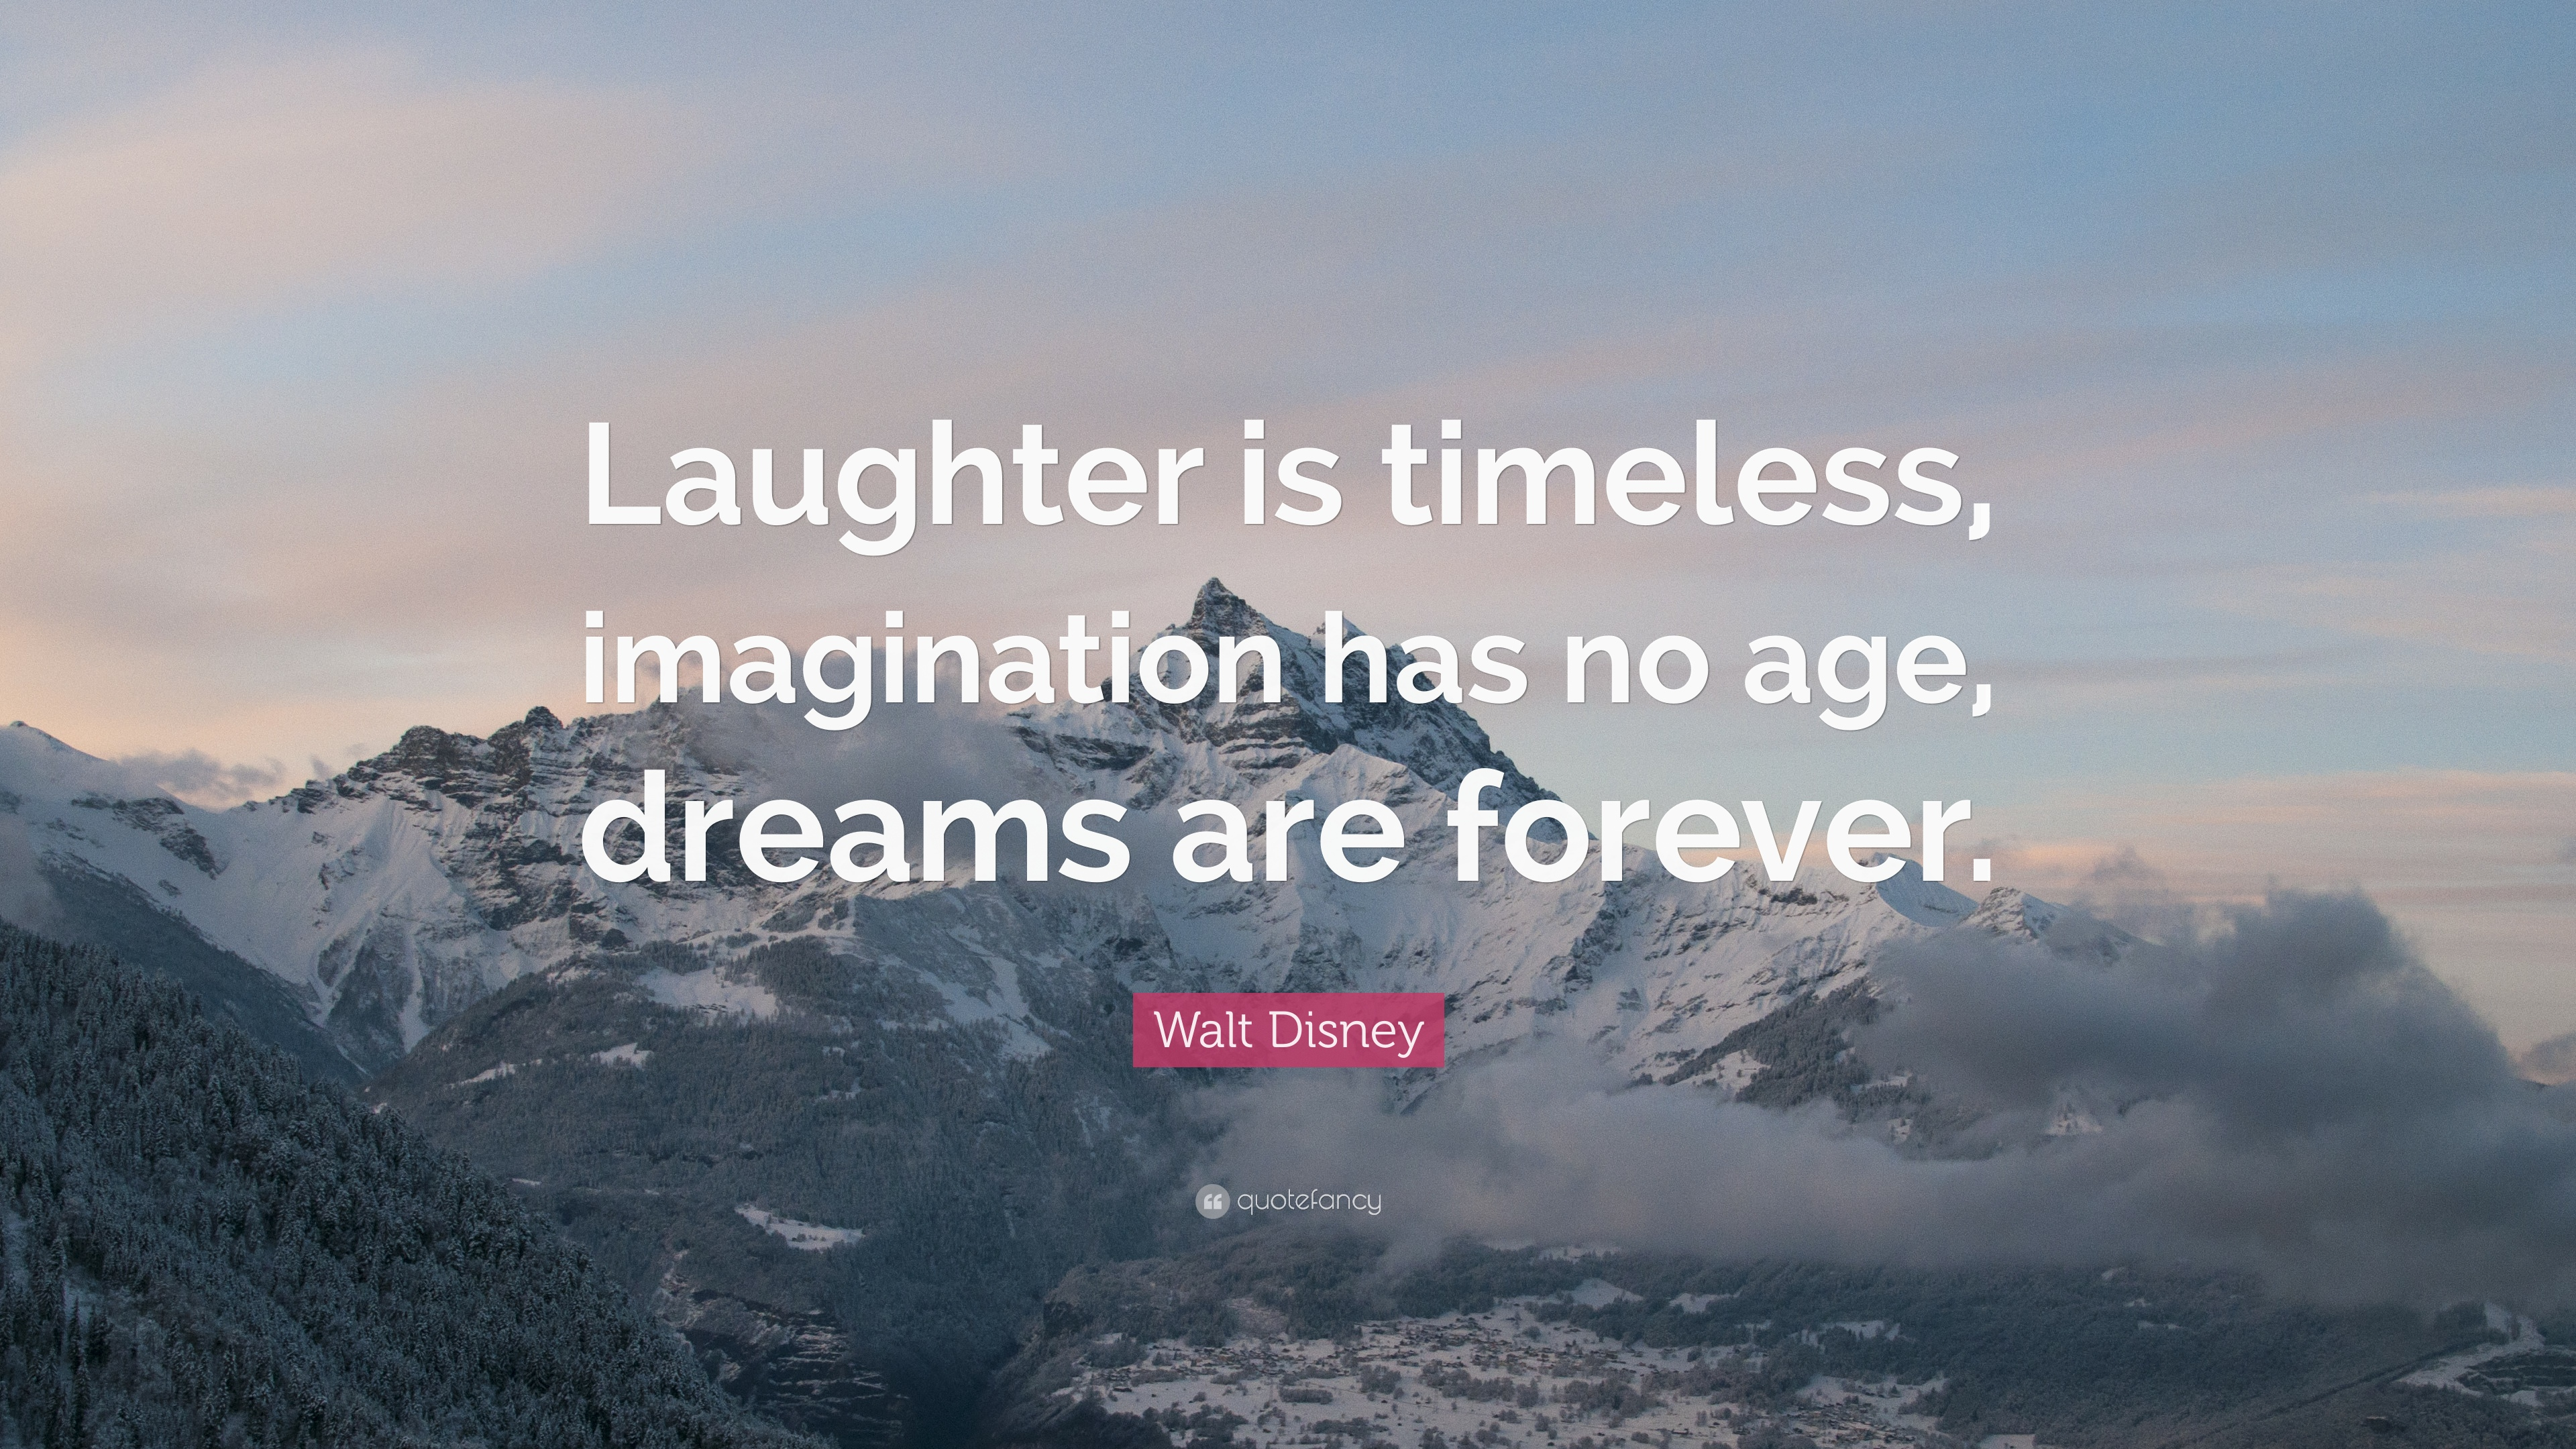 Laughter Is Timeless Imagination Has No Age Quote